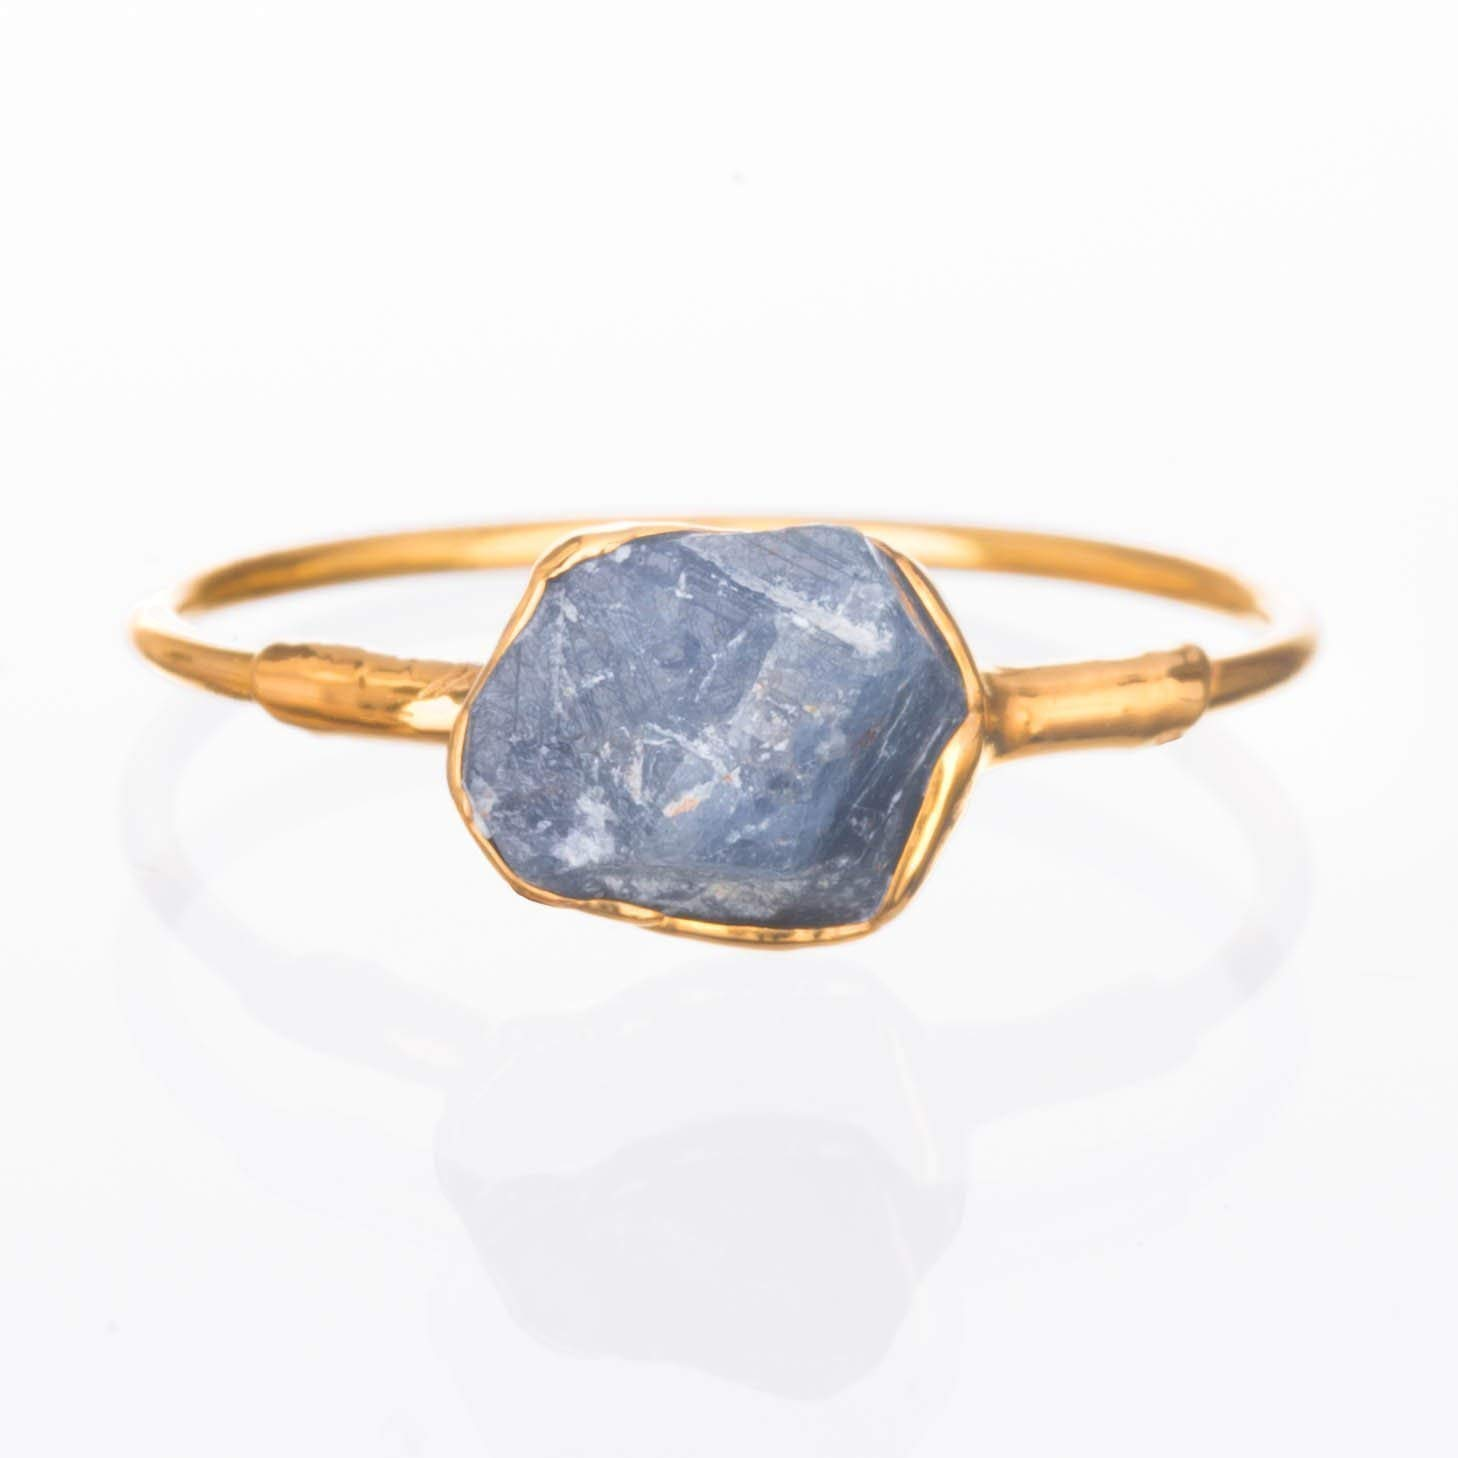 Raw Sapphire Ring, Size 7, September Birthstone,14k Gold Filled